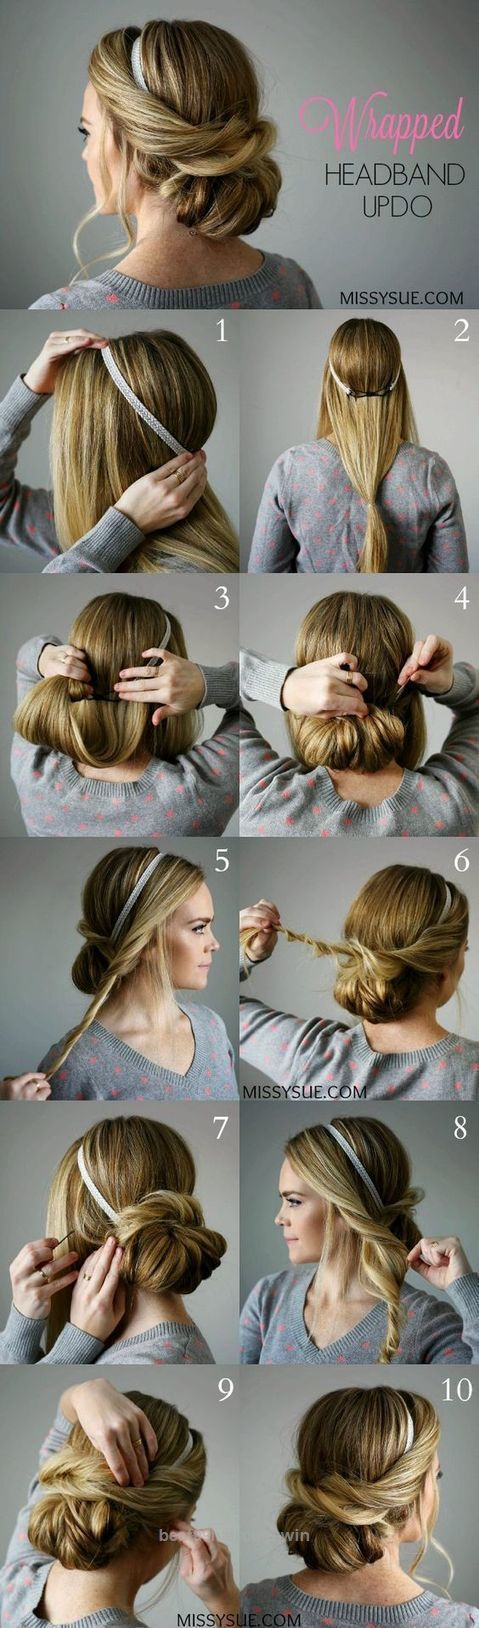 "Check it out imgsnpics.com/… ""wrapped headband updo diy hairstyle ""  The post  imgsnpics.com/… ""wrapped headband updo diy hairstyle ""…  appeared first on  99Haircuts ."